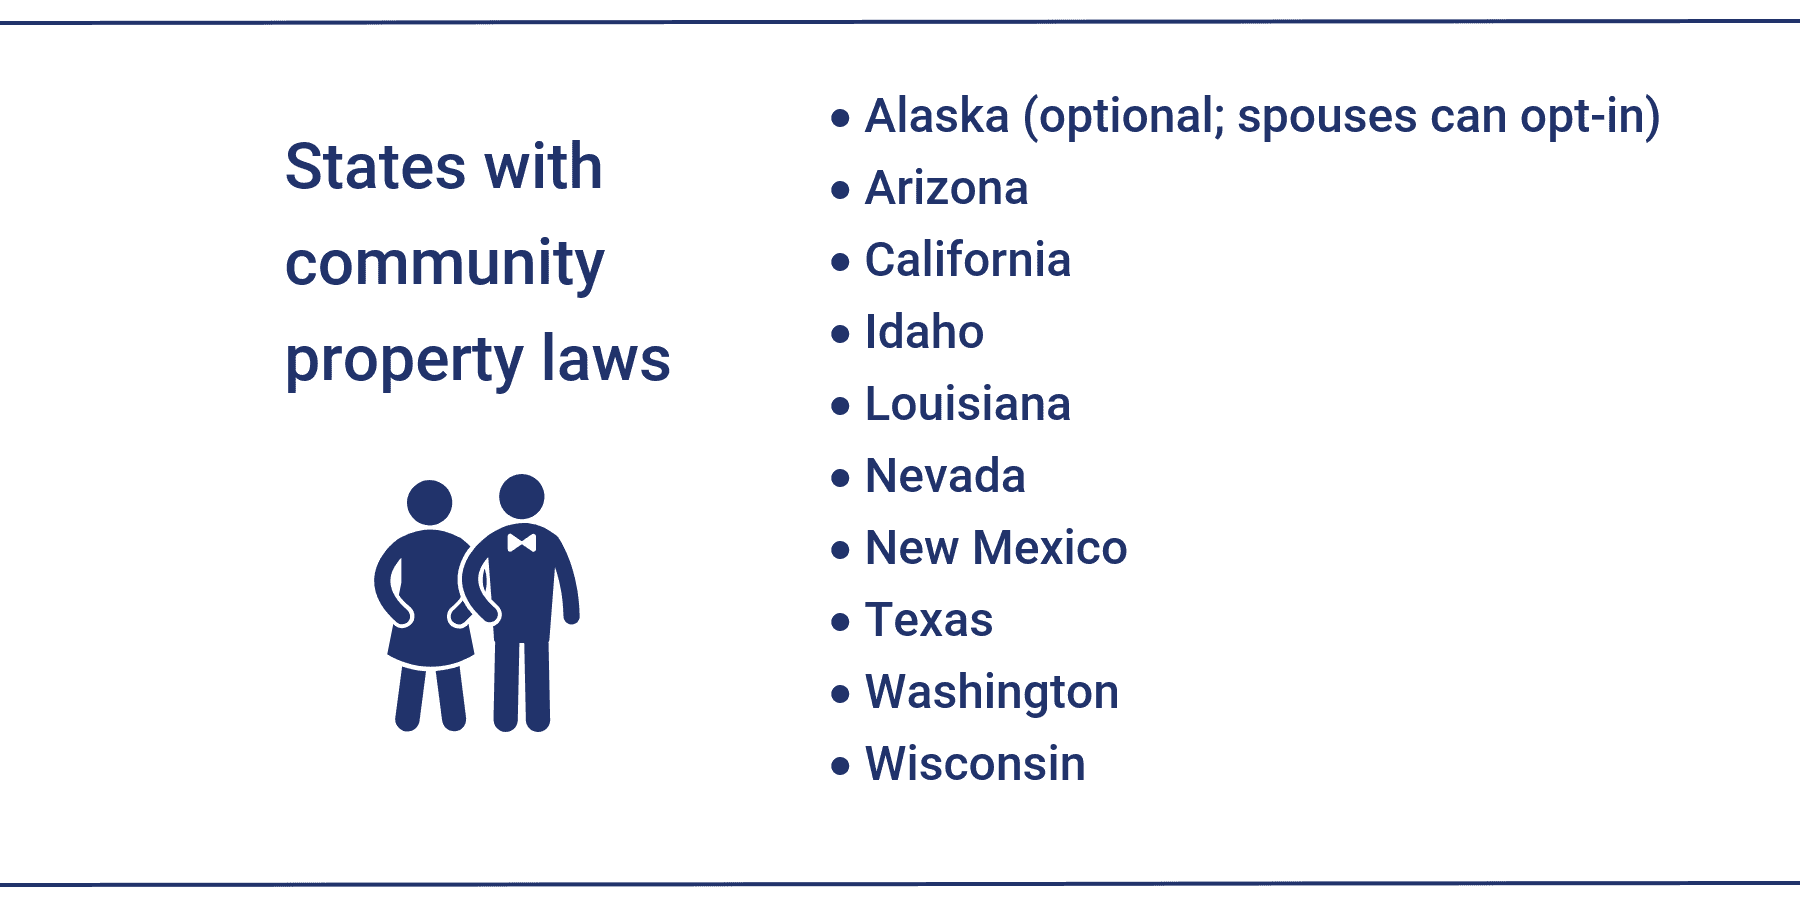 States with community property laws